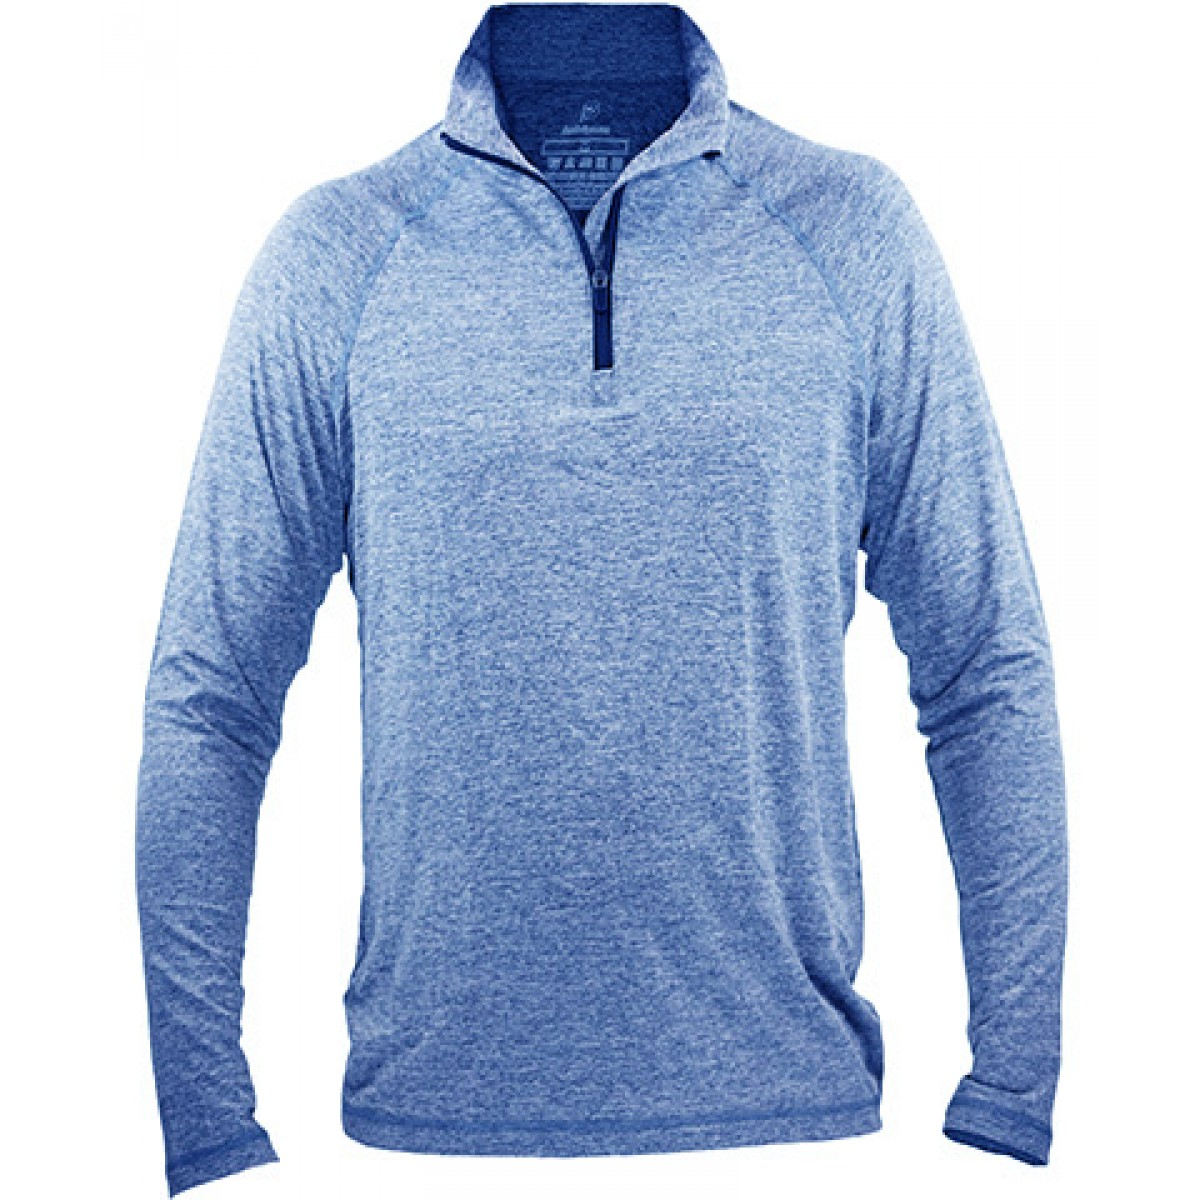 Fine Designs Blend 1/4-Zip Pullover-Blue-XL